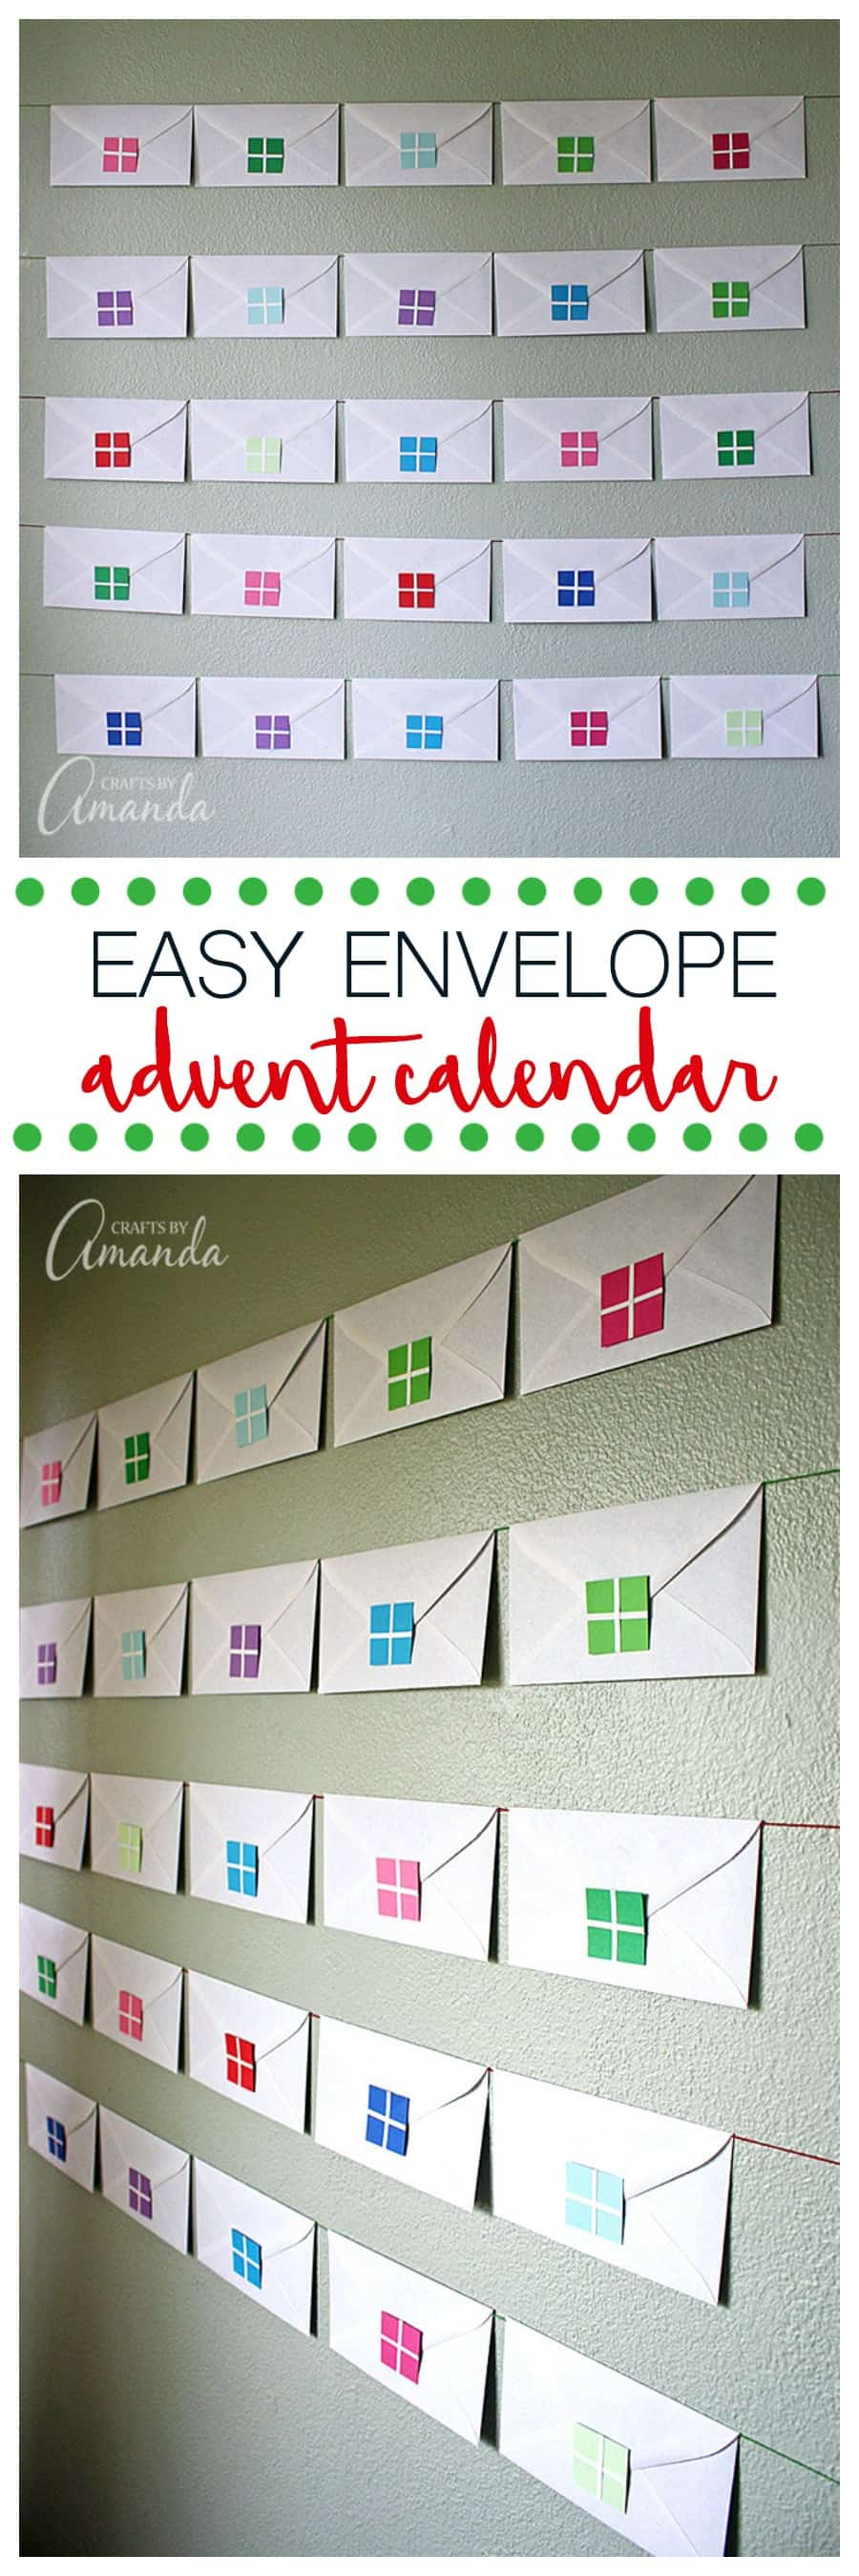 Why not start a new Christmas tradition with your kids by creating a simple envelope advent calendar using no more than plain white envelopes and colored paper.